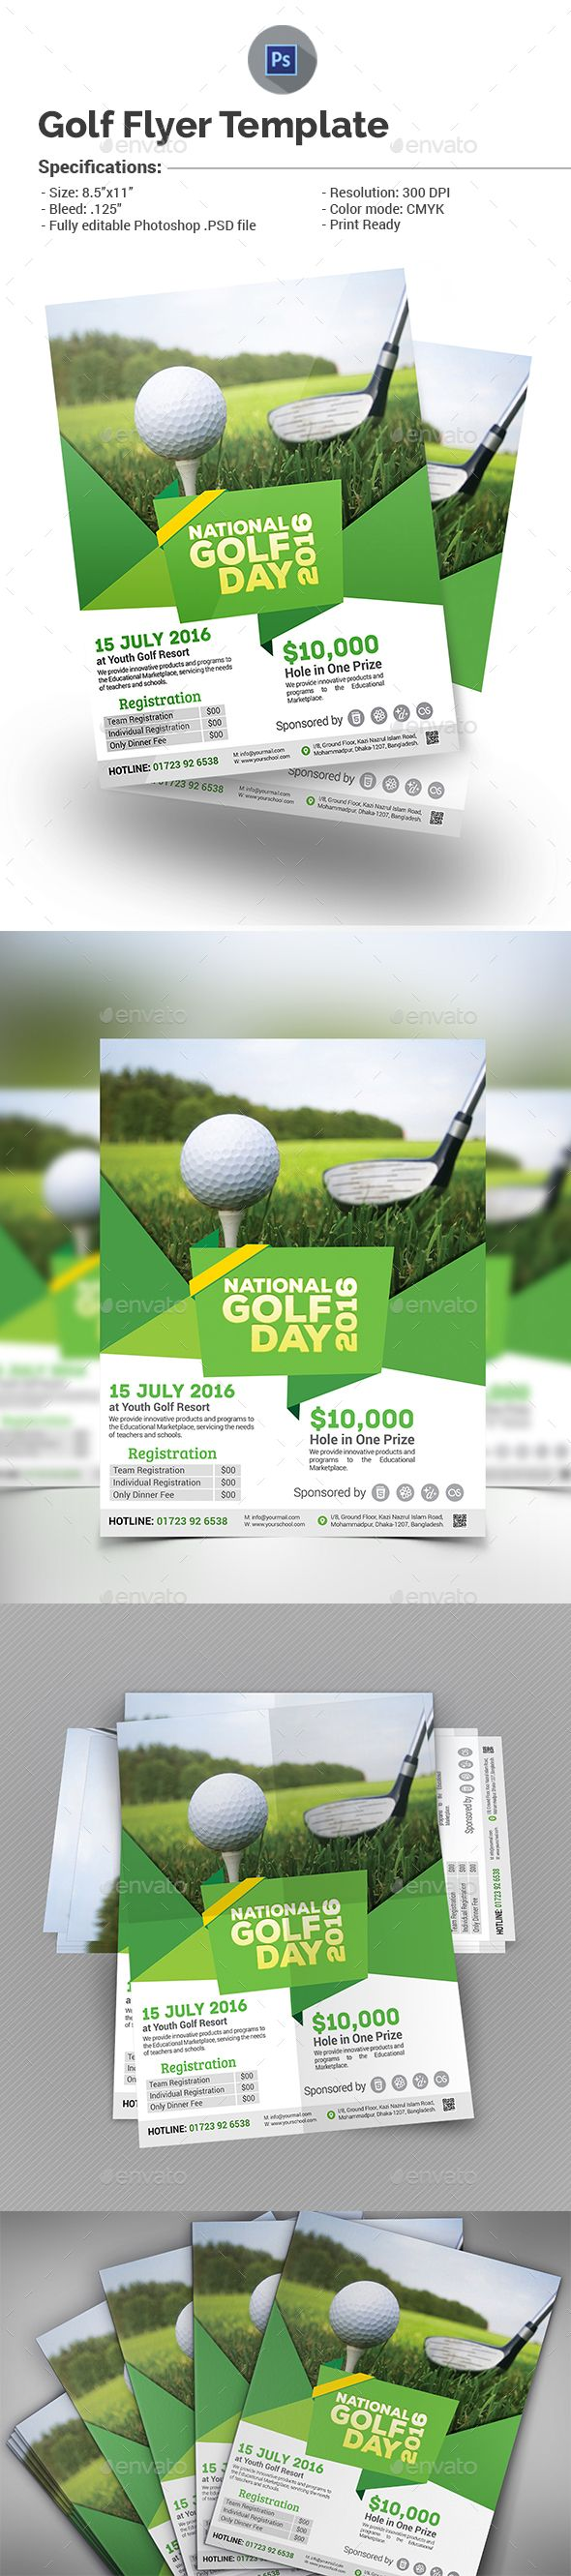 golf brochure templates - 17 images about golf on pinterest search events and